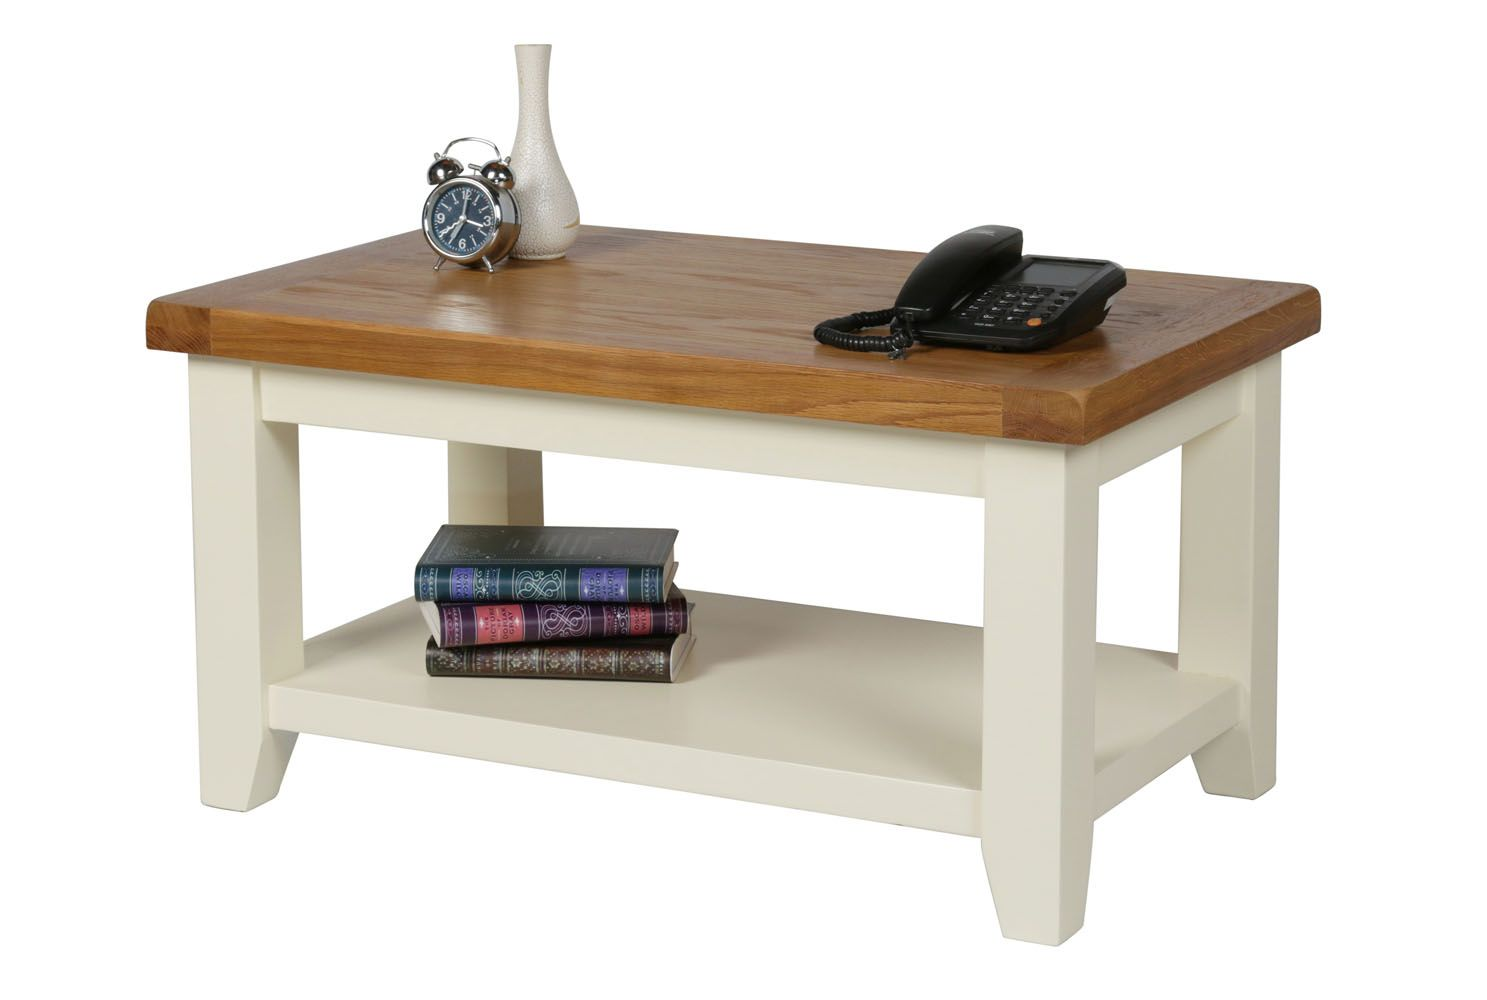 Country Oak Cream Painted Coffee Table